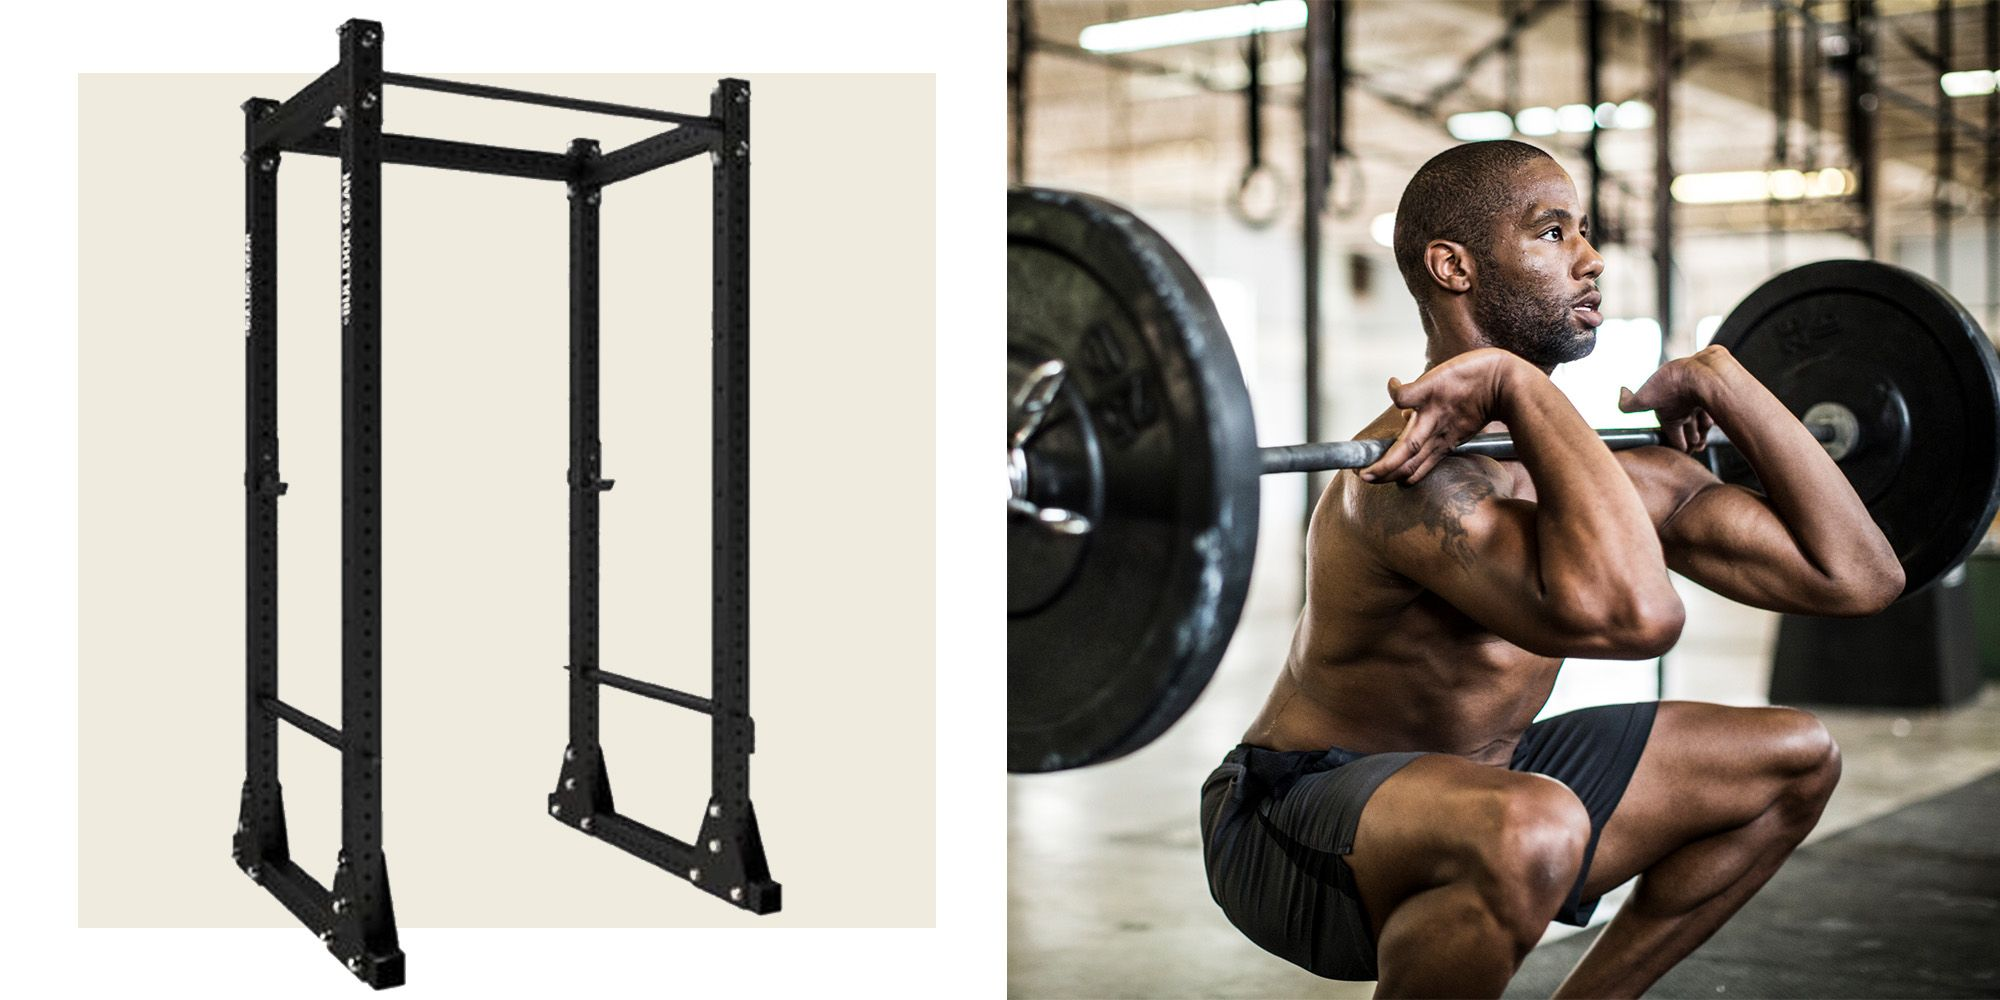 17 squat racks that will level up your home gym while packing on strength